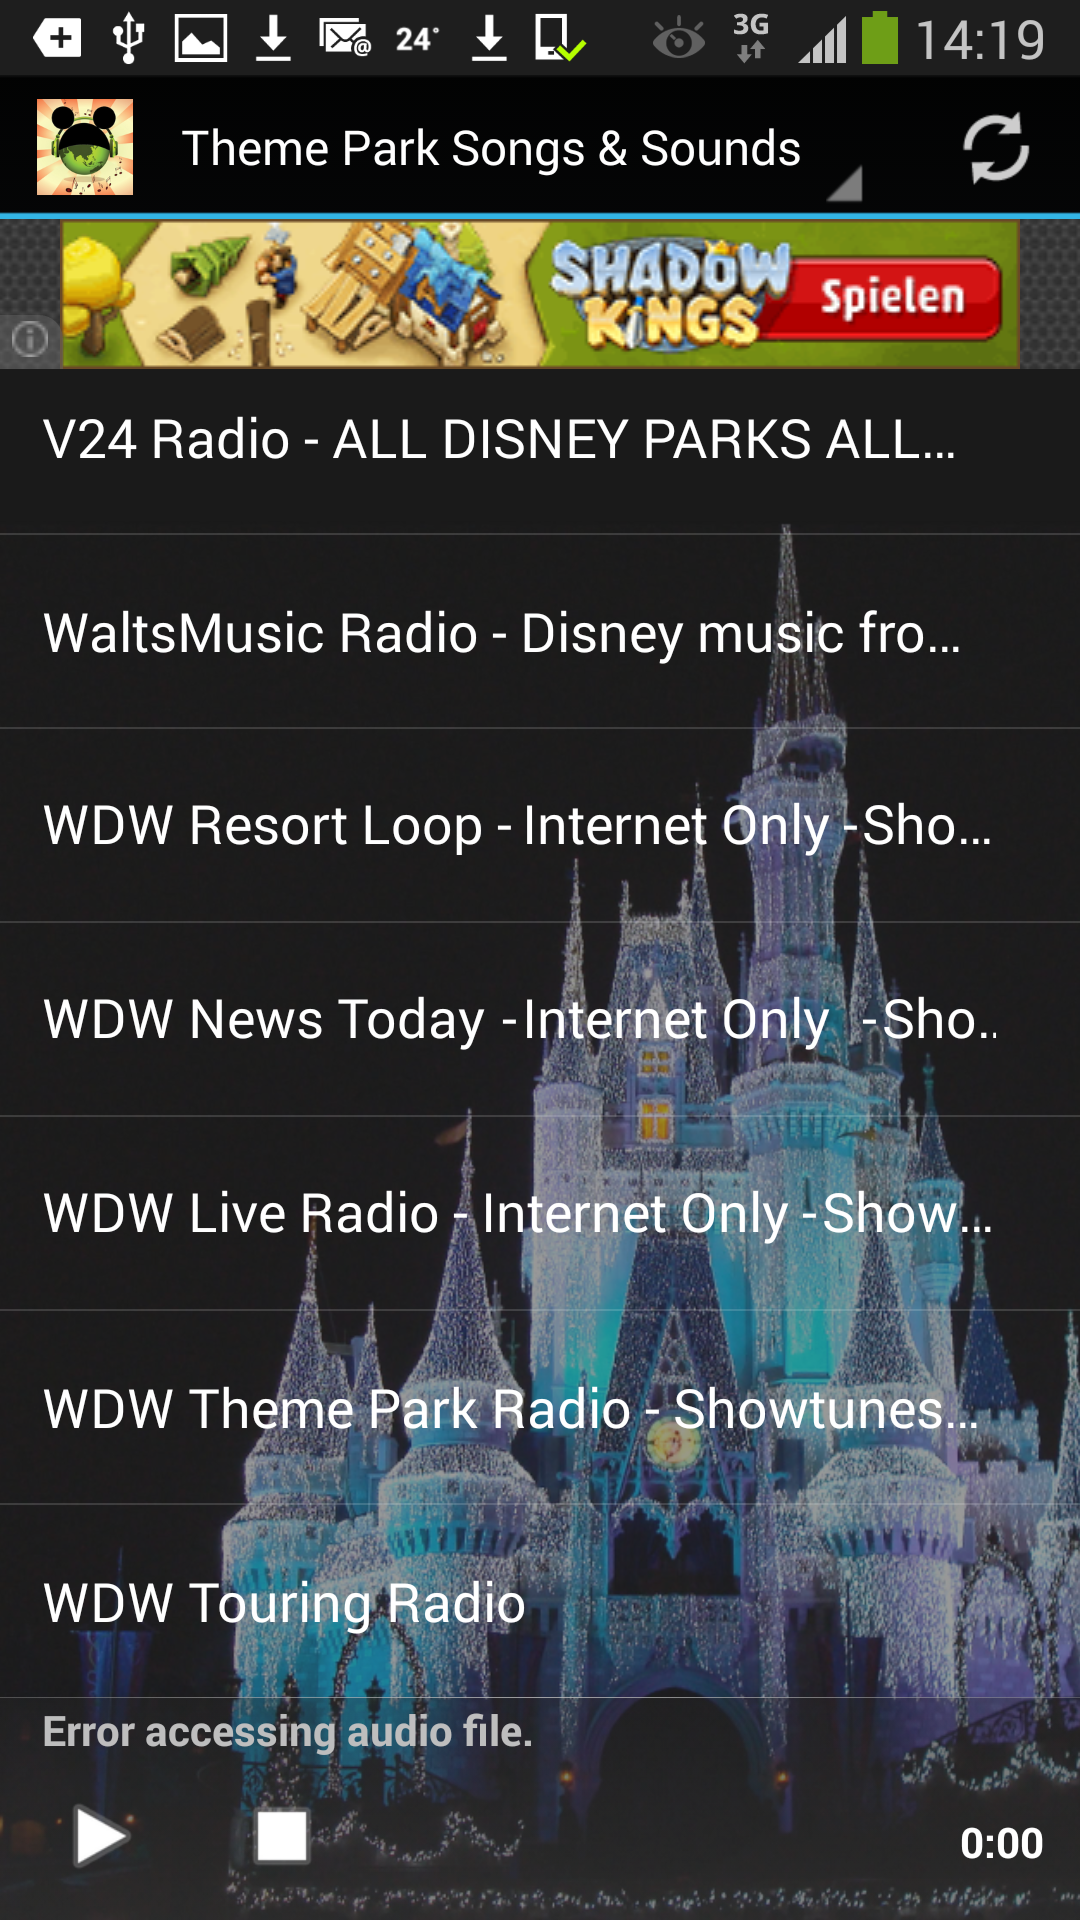 Theme Park Radio Songs & Sounds